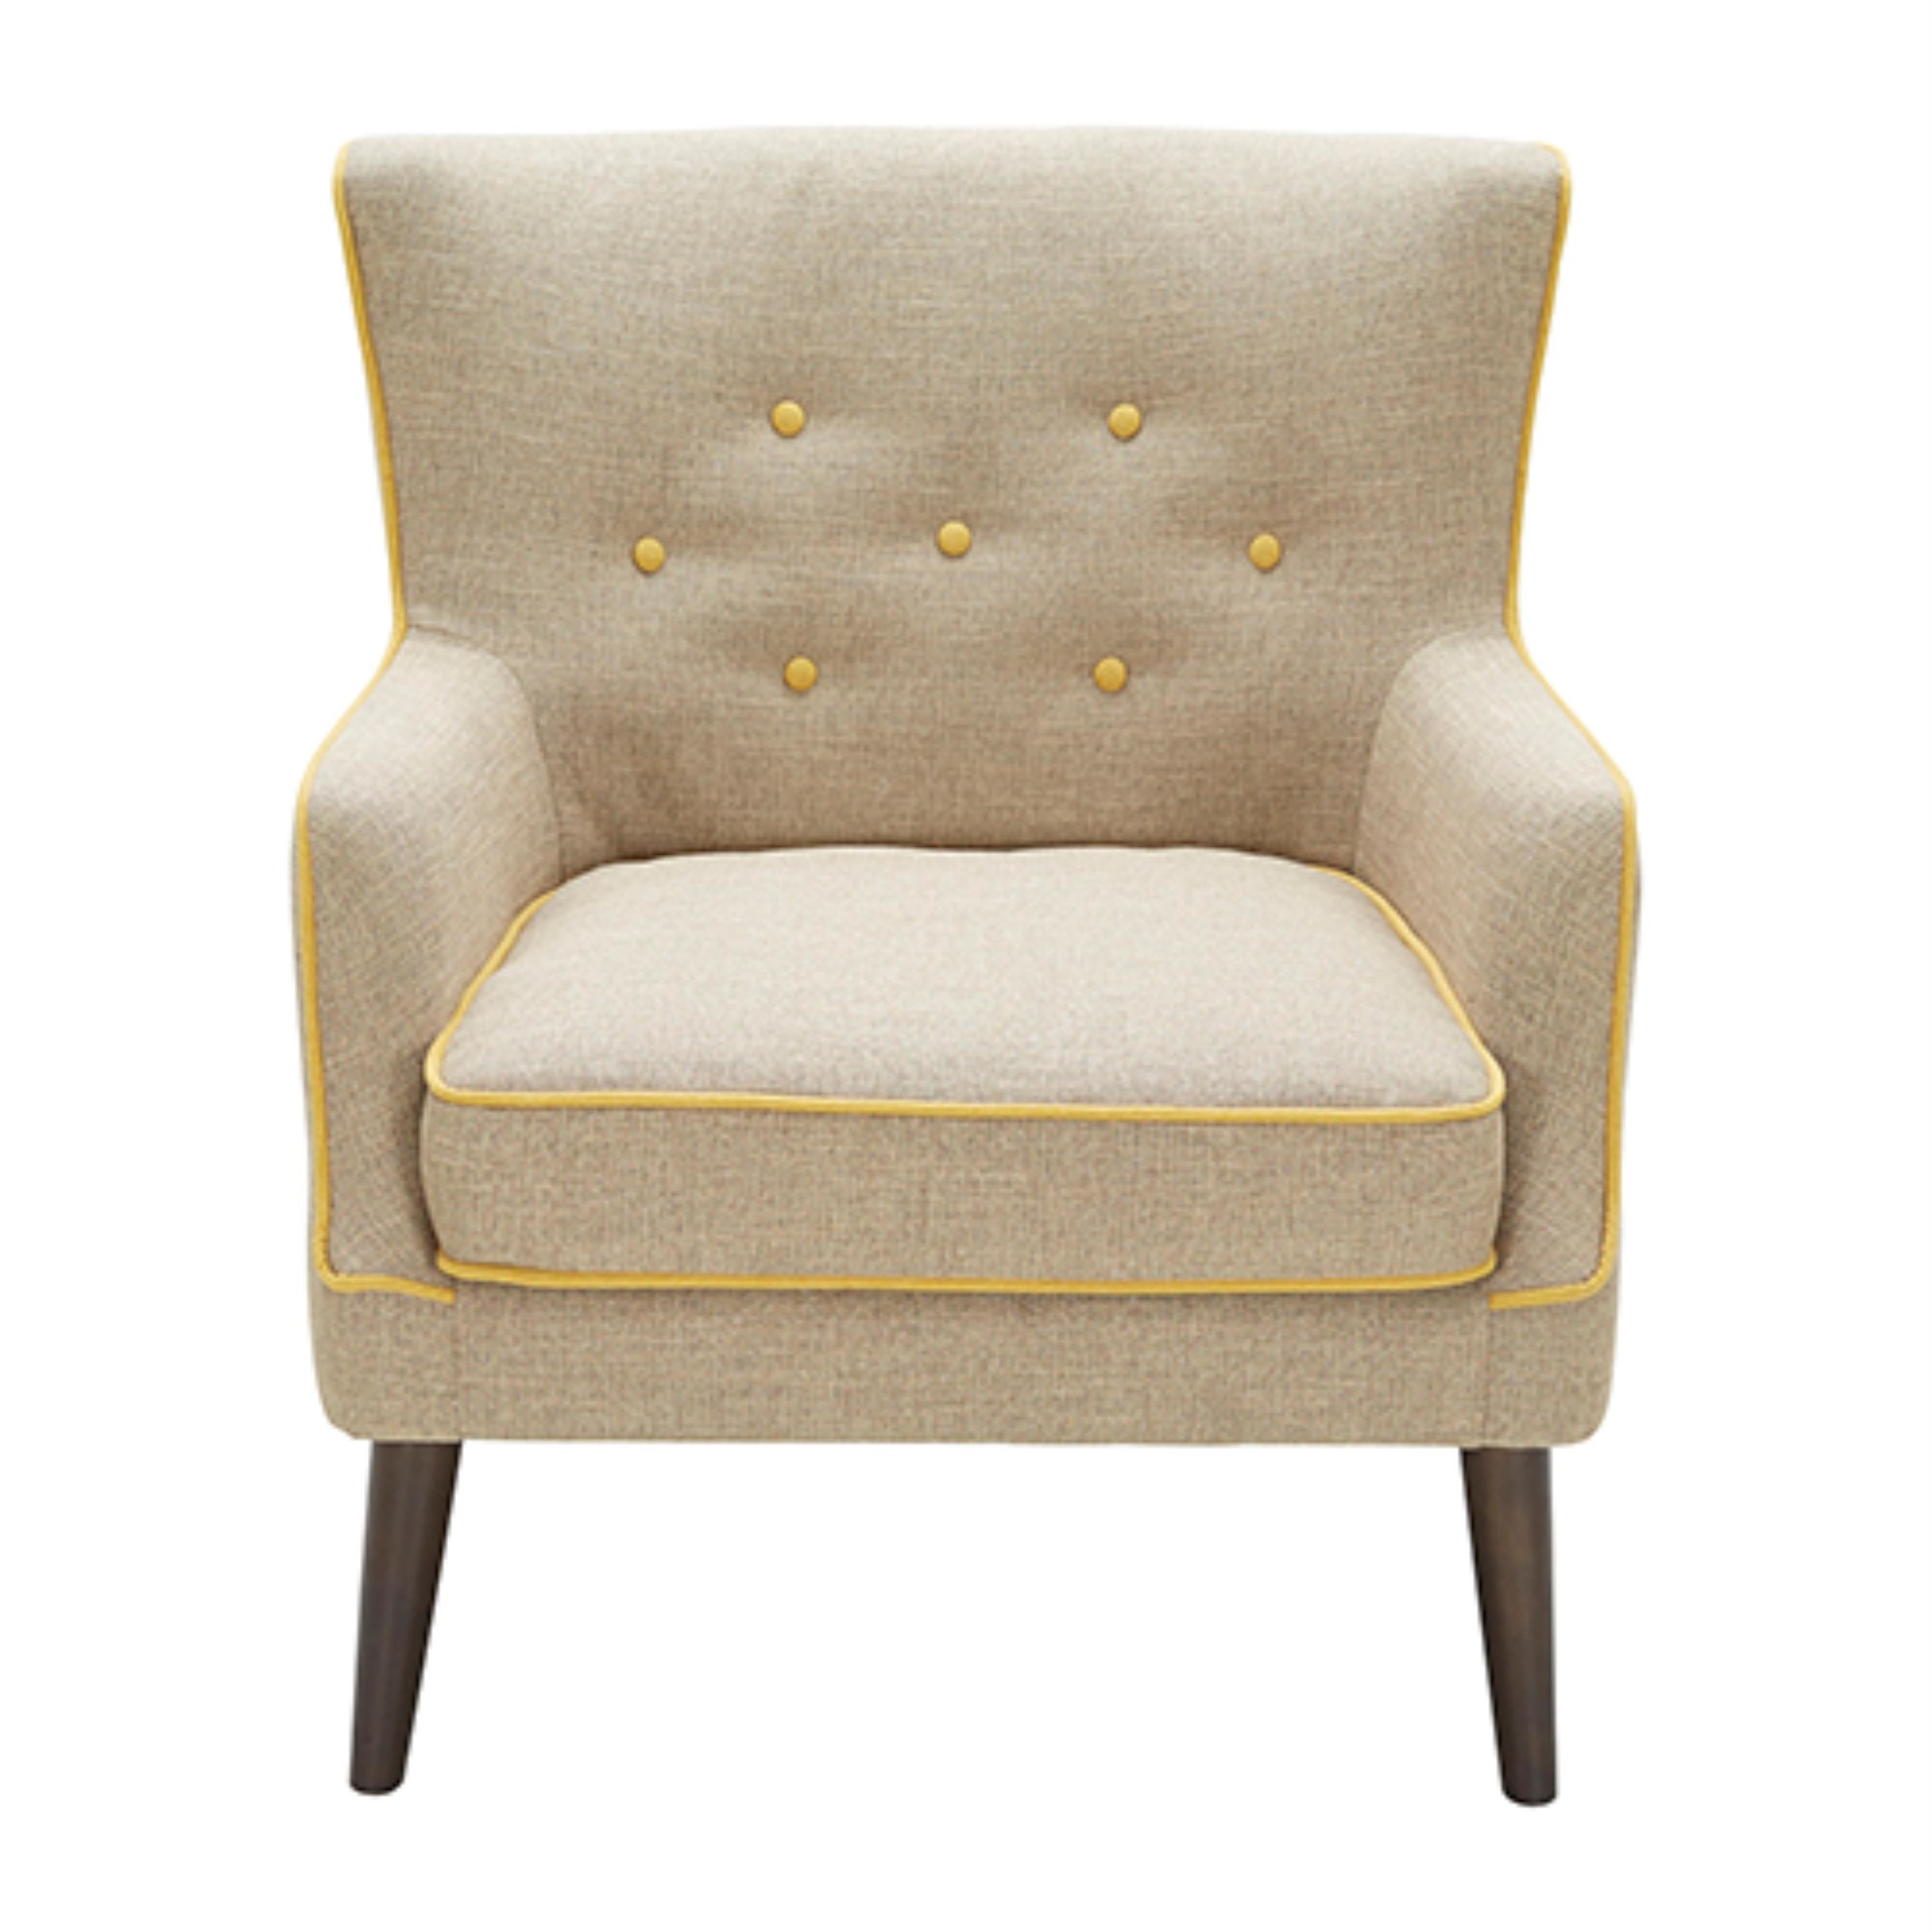 Sedgwick Accent Chair Lumisource Stylish Decor At